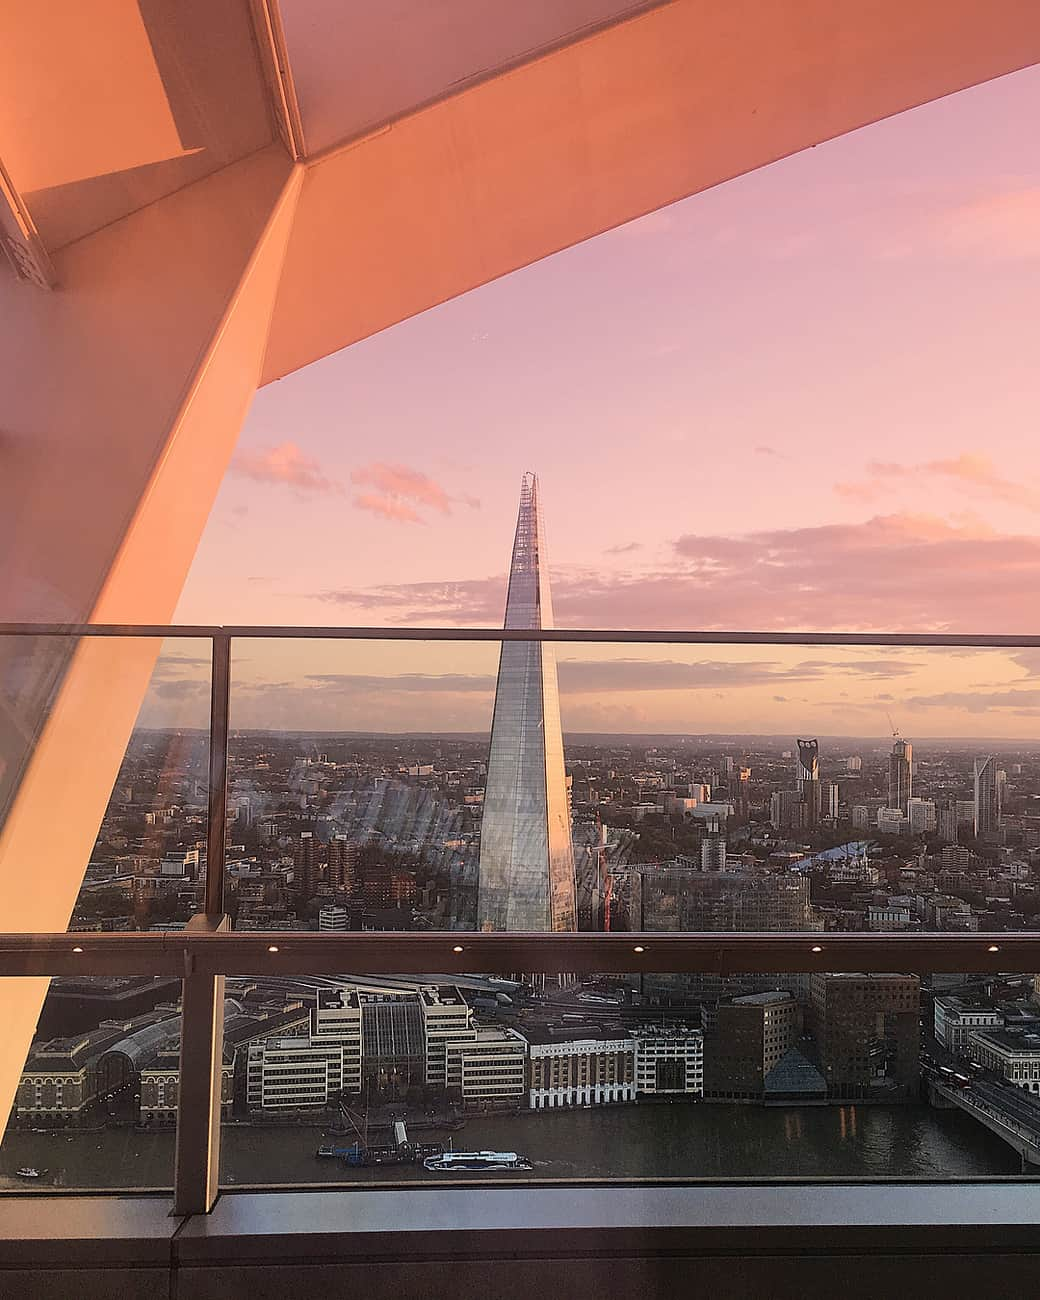 London Sky garden sunset